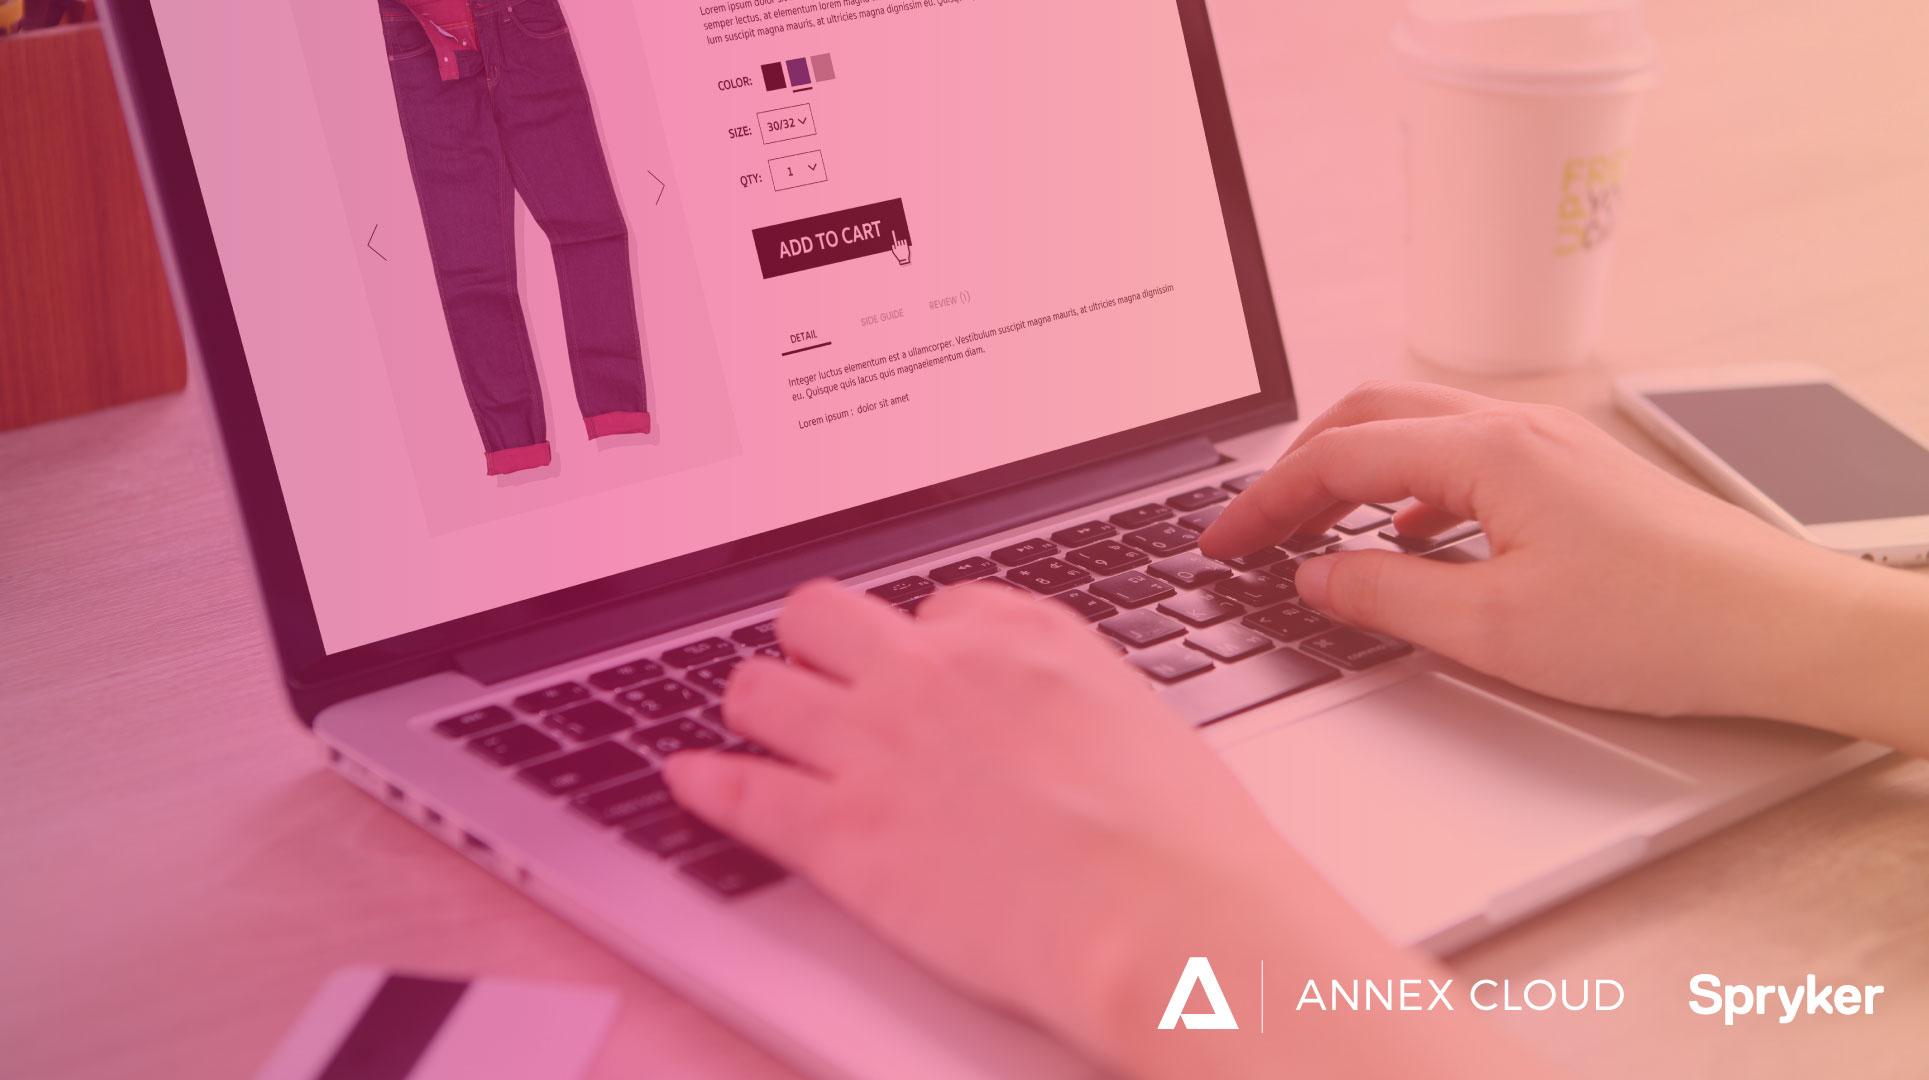 Leading customer loyalty and experience solutions company, Annex Cloud, has announced a strategic partnership with Spryker